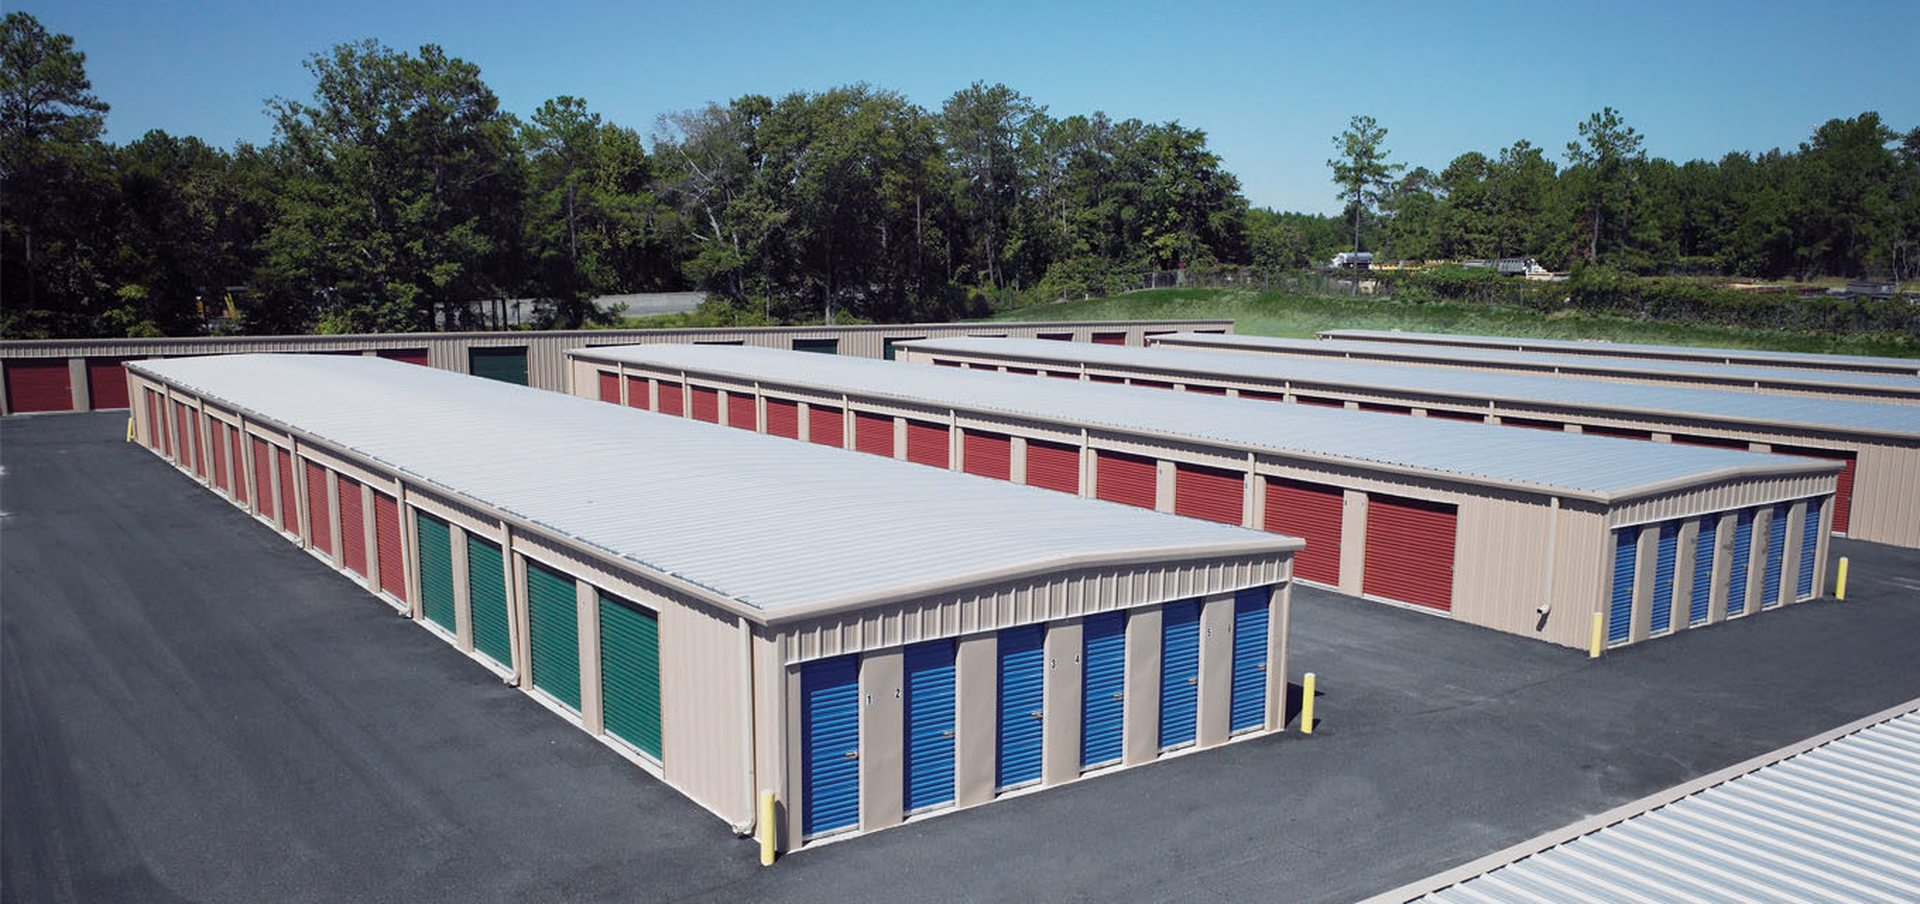 Self-Storage units using Butler pre-engineered steel construction